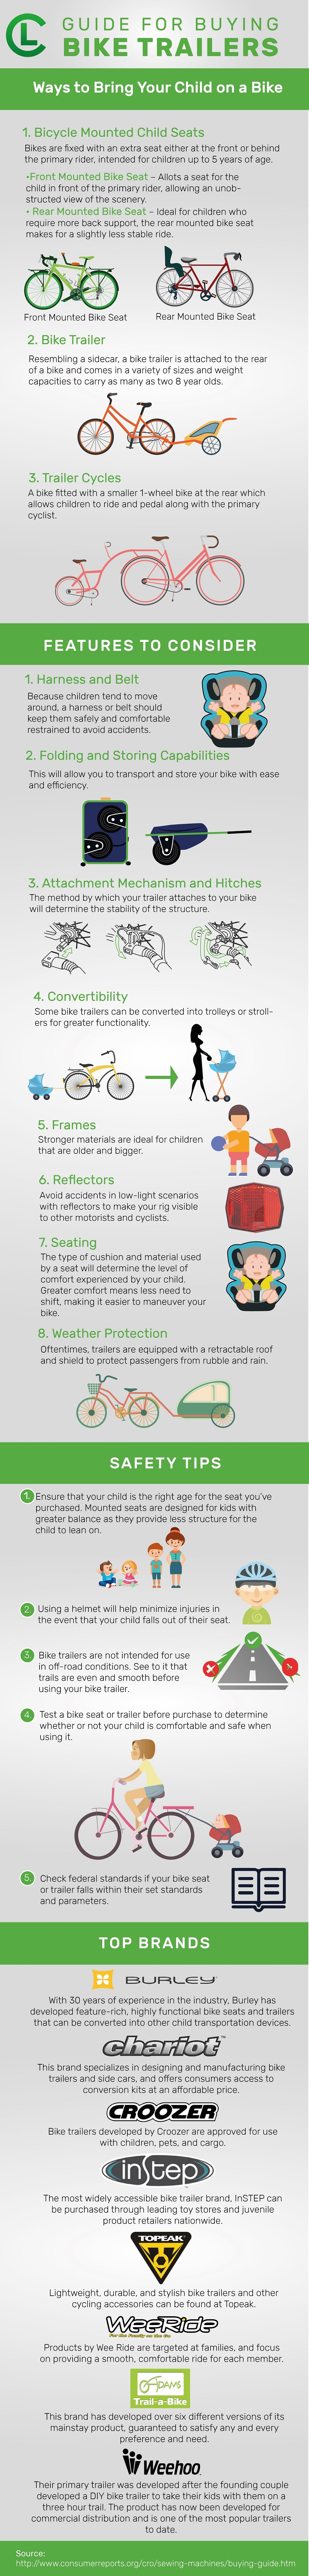 Guide For Buying Bike Trailers Infographic